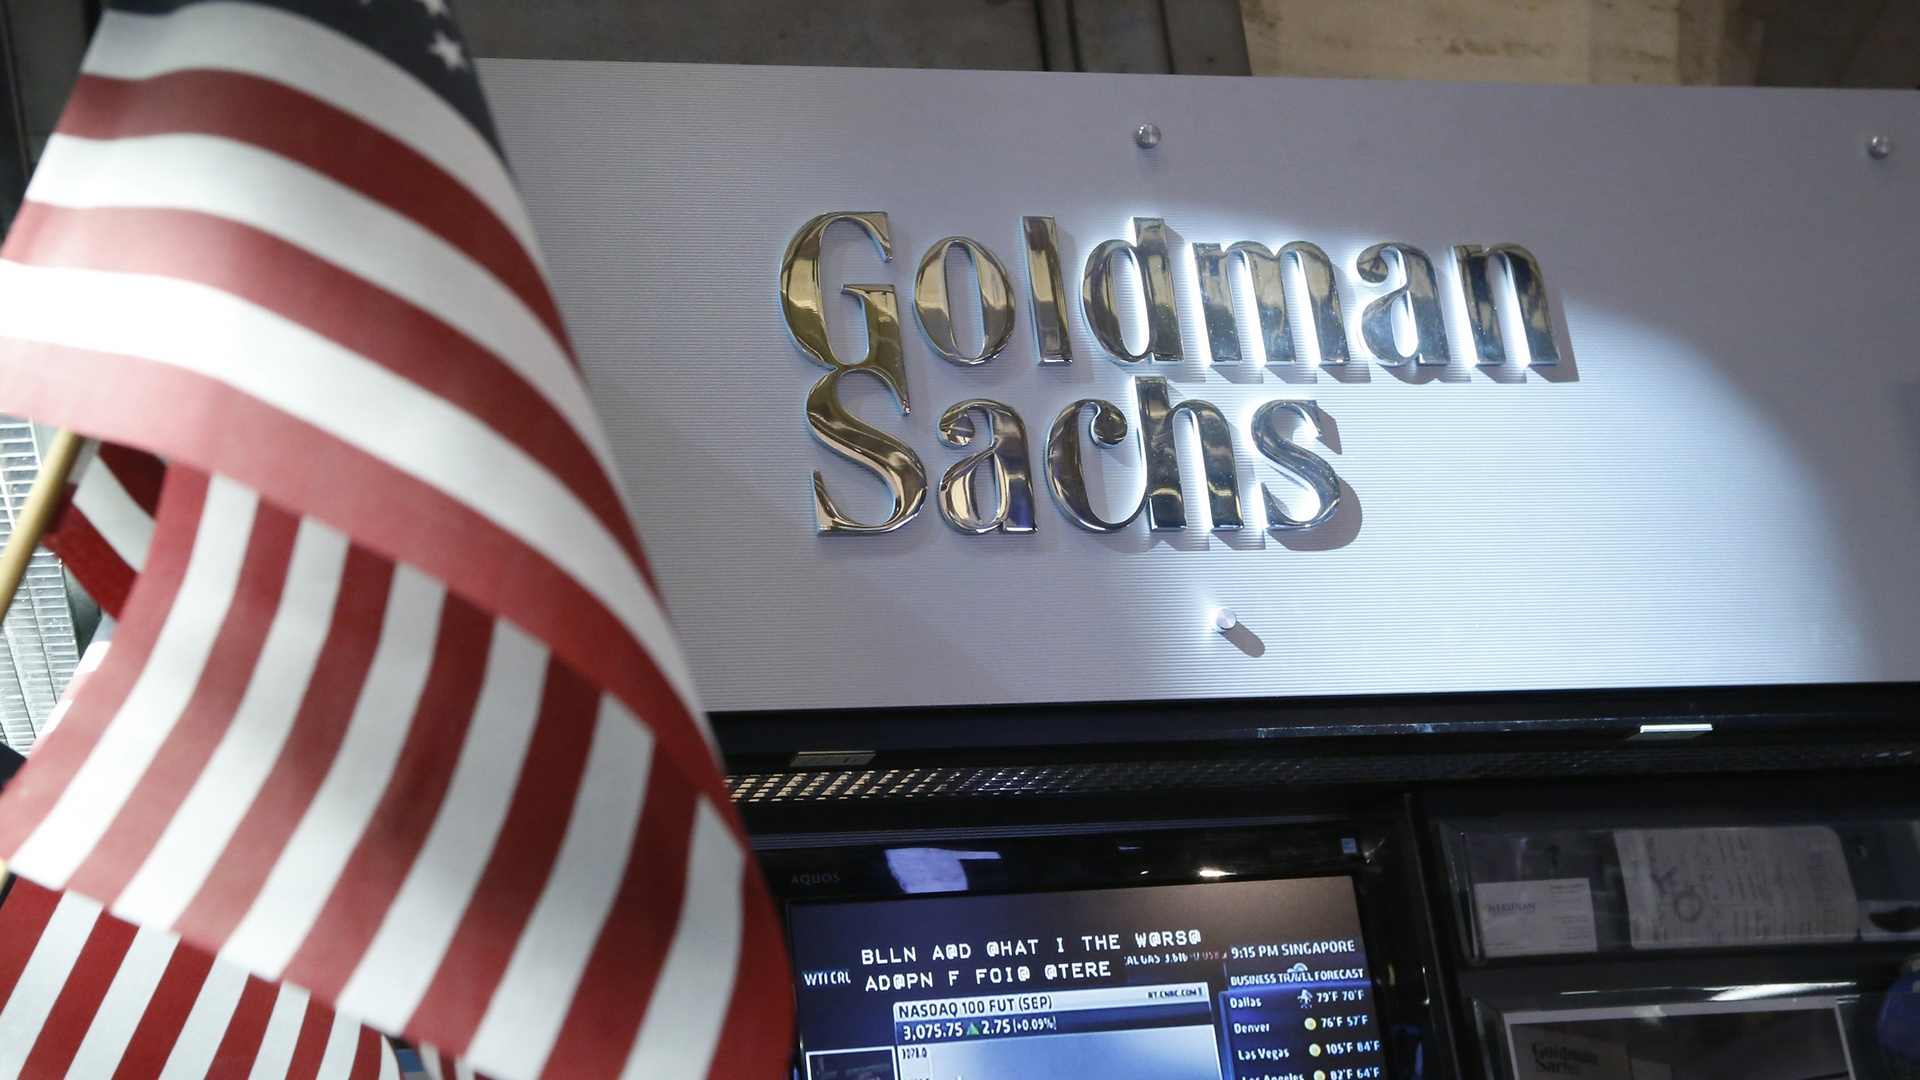 A view of the Goldman Sachs stall on the floor of the New York Stock Exchange July 16, 2013. Goldman Sachs Group Inc said on Tuesday quarterly profit doubled, beating Wall Street estimates, boosted by returns from investing the bank's own money. REUTERS/Brendan McDermid (UNITED STATES - Tags: BUSINESS) - RTX11OFA